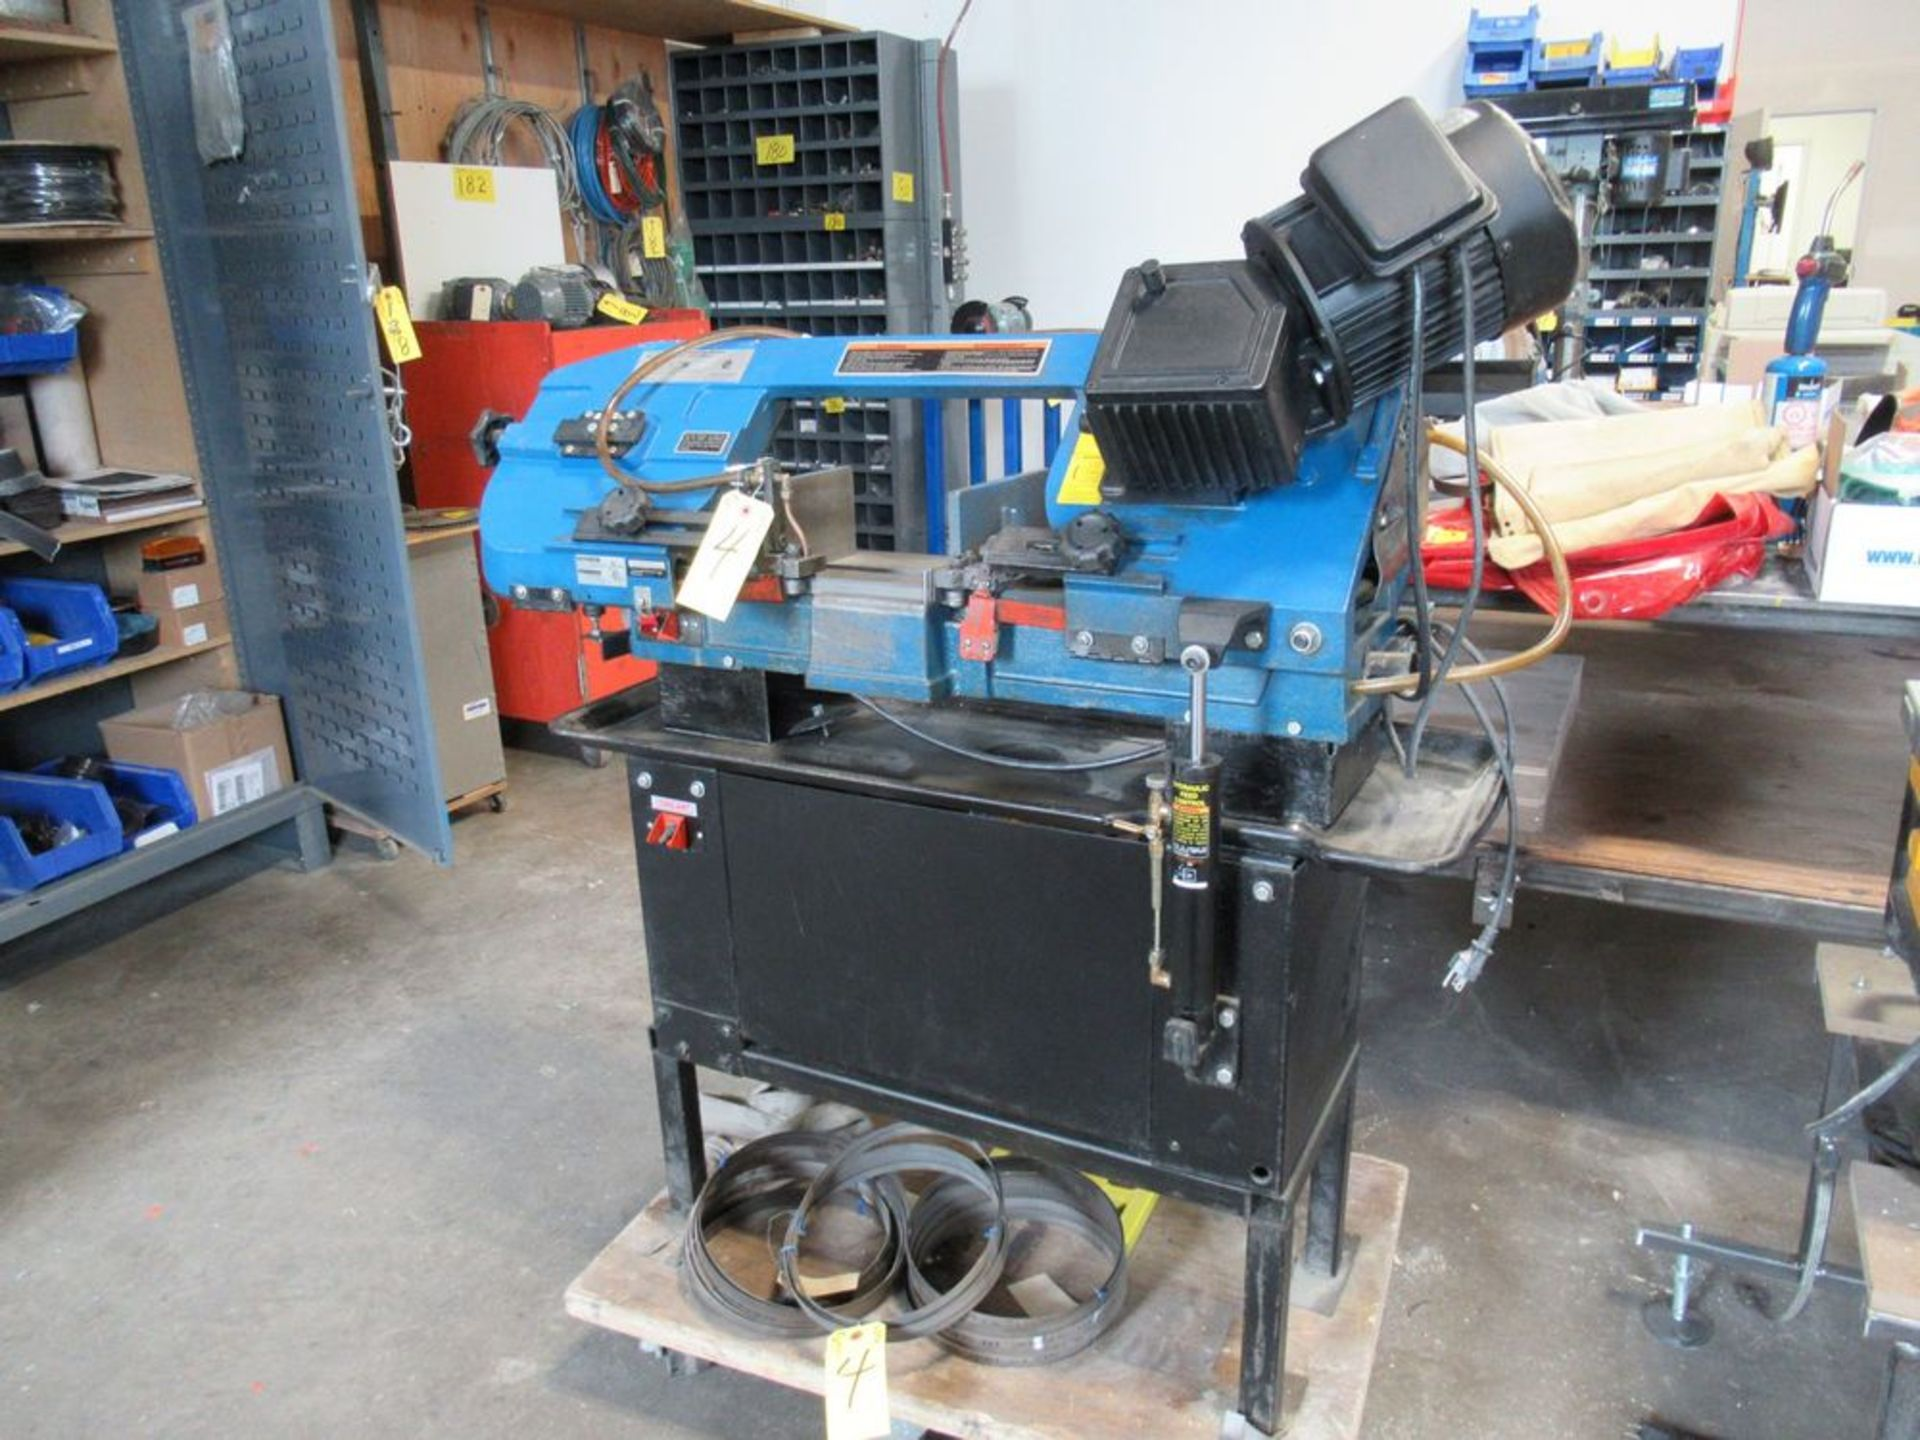 """JET JHVG-712 7"""" X 12"""" 3-SPEED HORIZONTAL BANDSAW W/ SAW BLADES AND ROLLER STAND, S/N 14071991"""